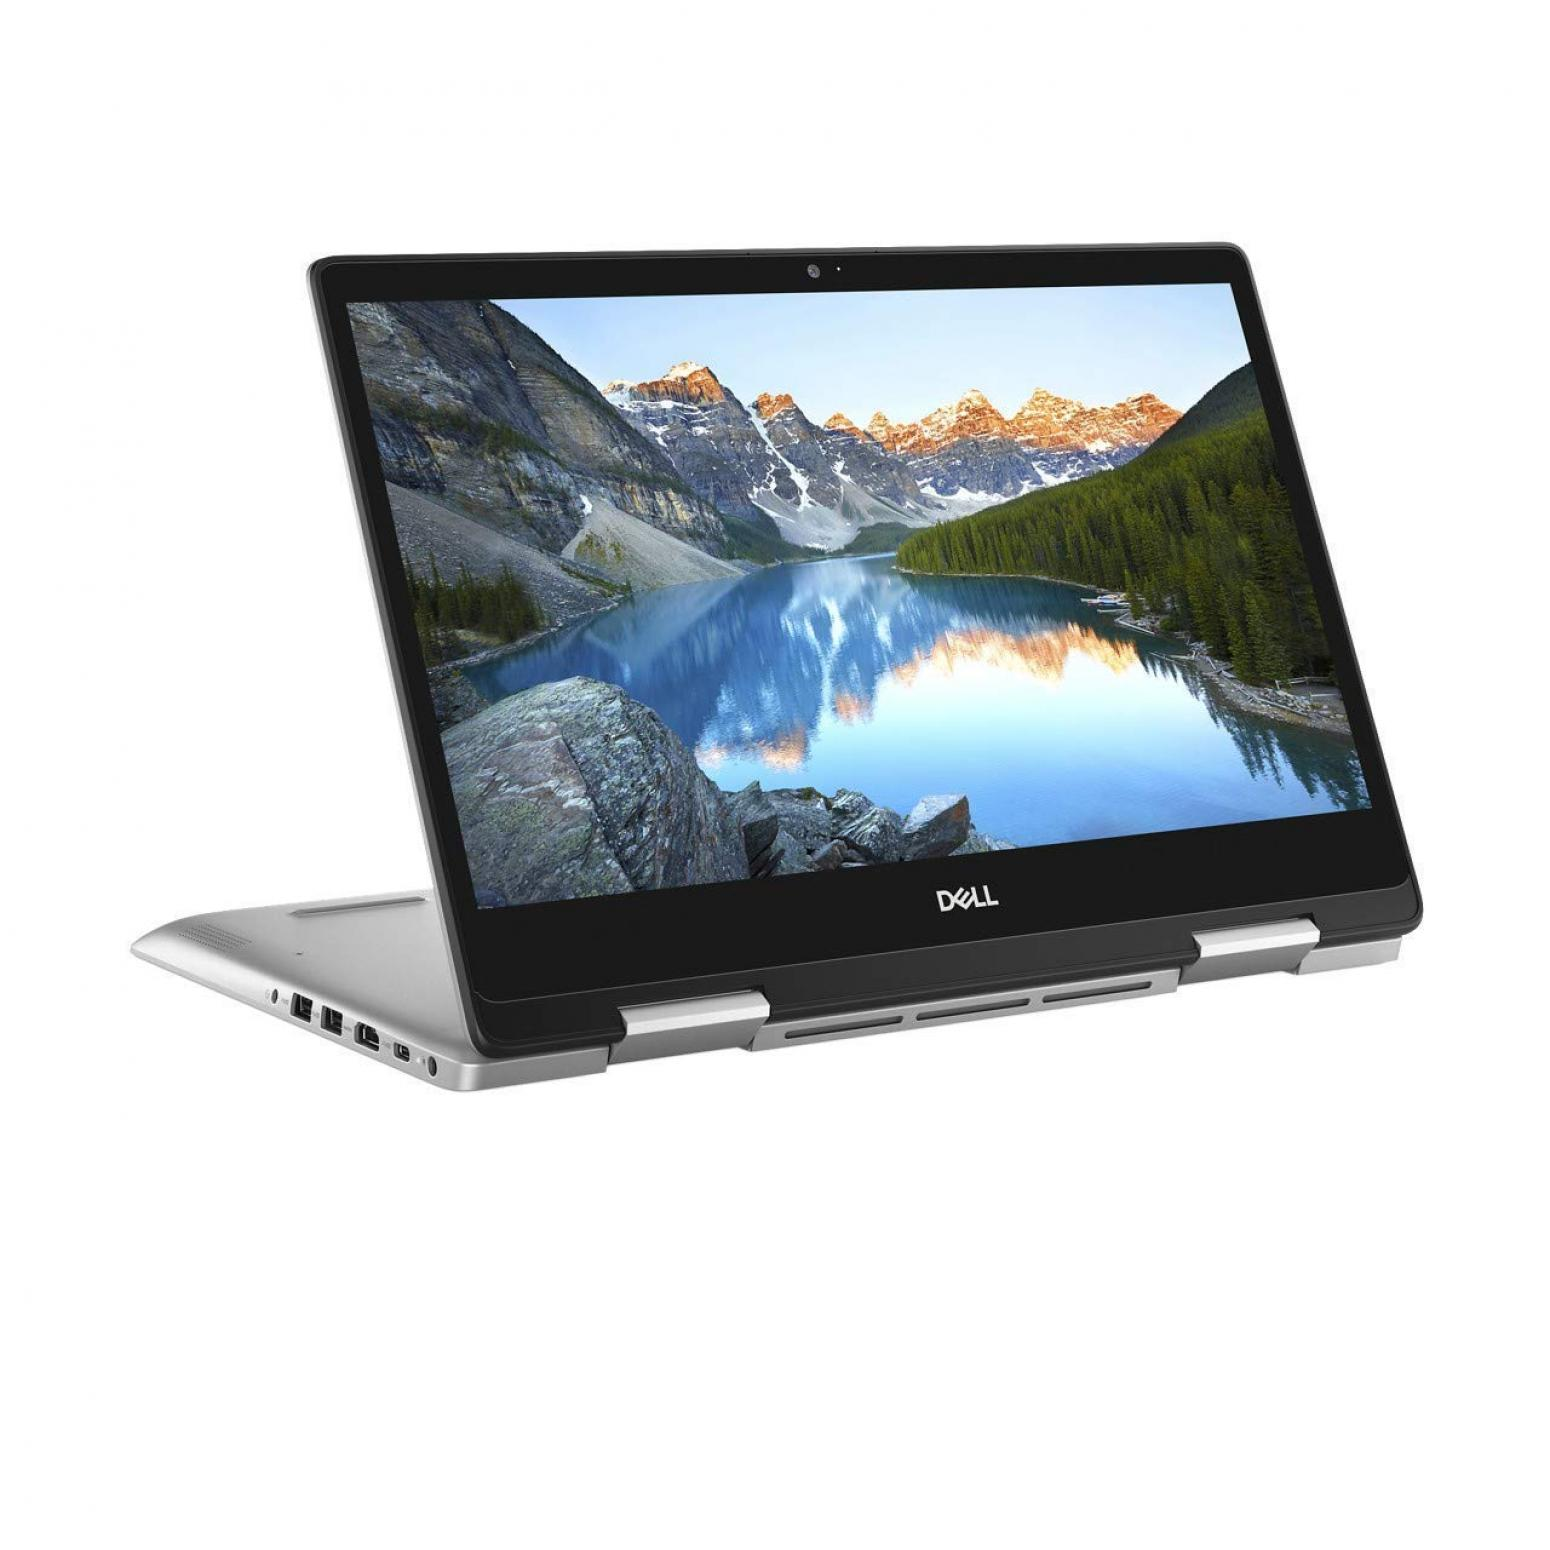 Ordinateur portable Dell Inspiron 14 5482 2-en-1 - SSD 256 Go, Core i3 Turbo Whiskey Lake - photo 2